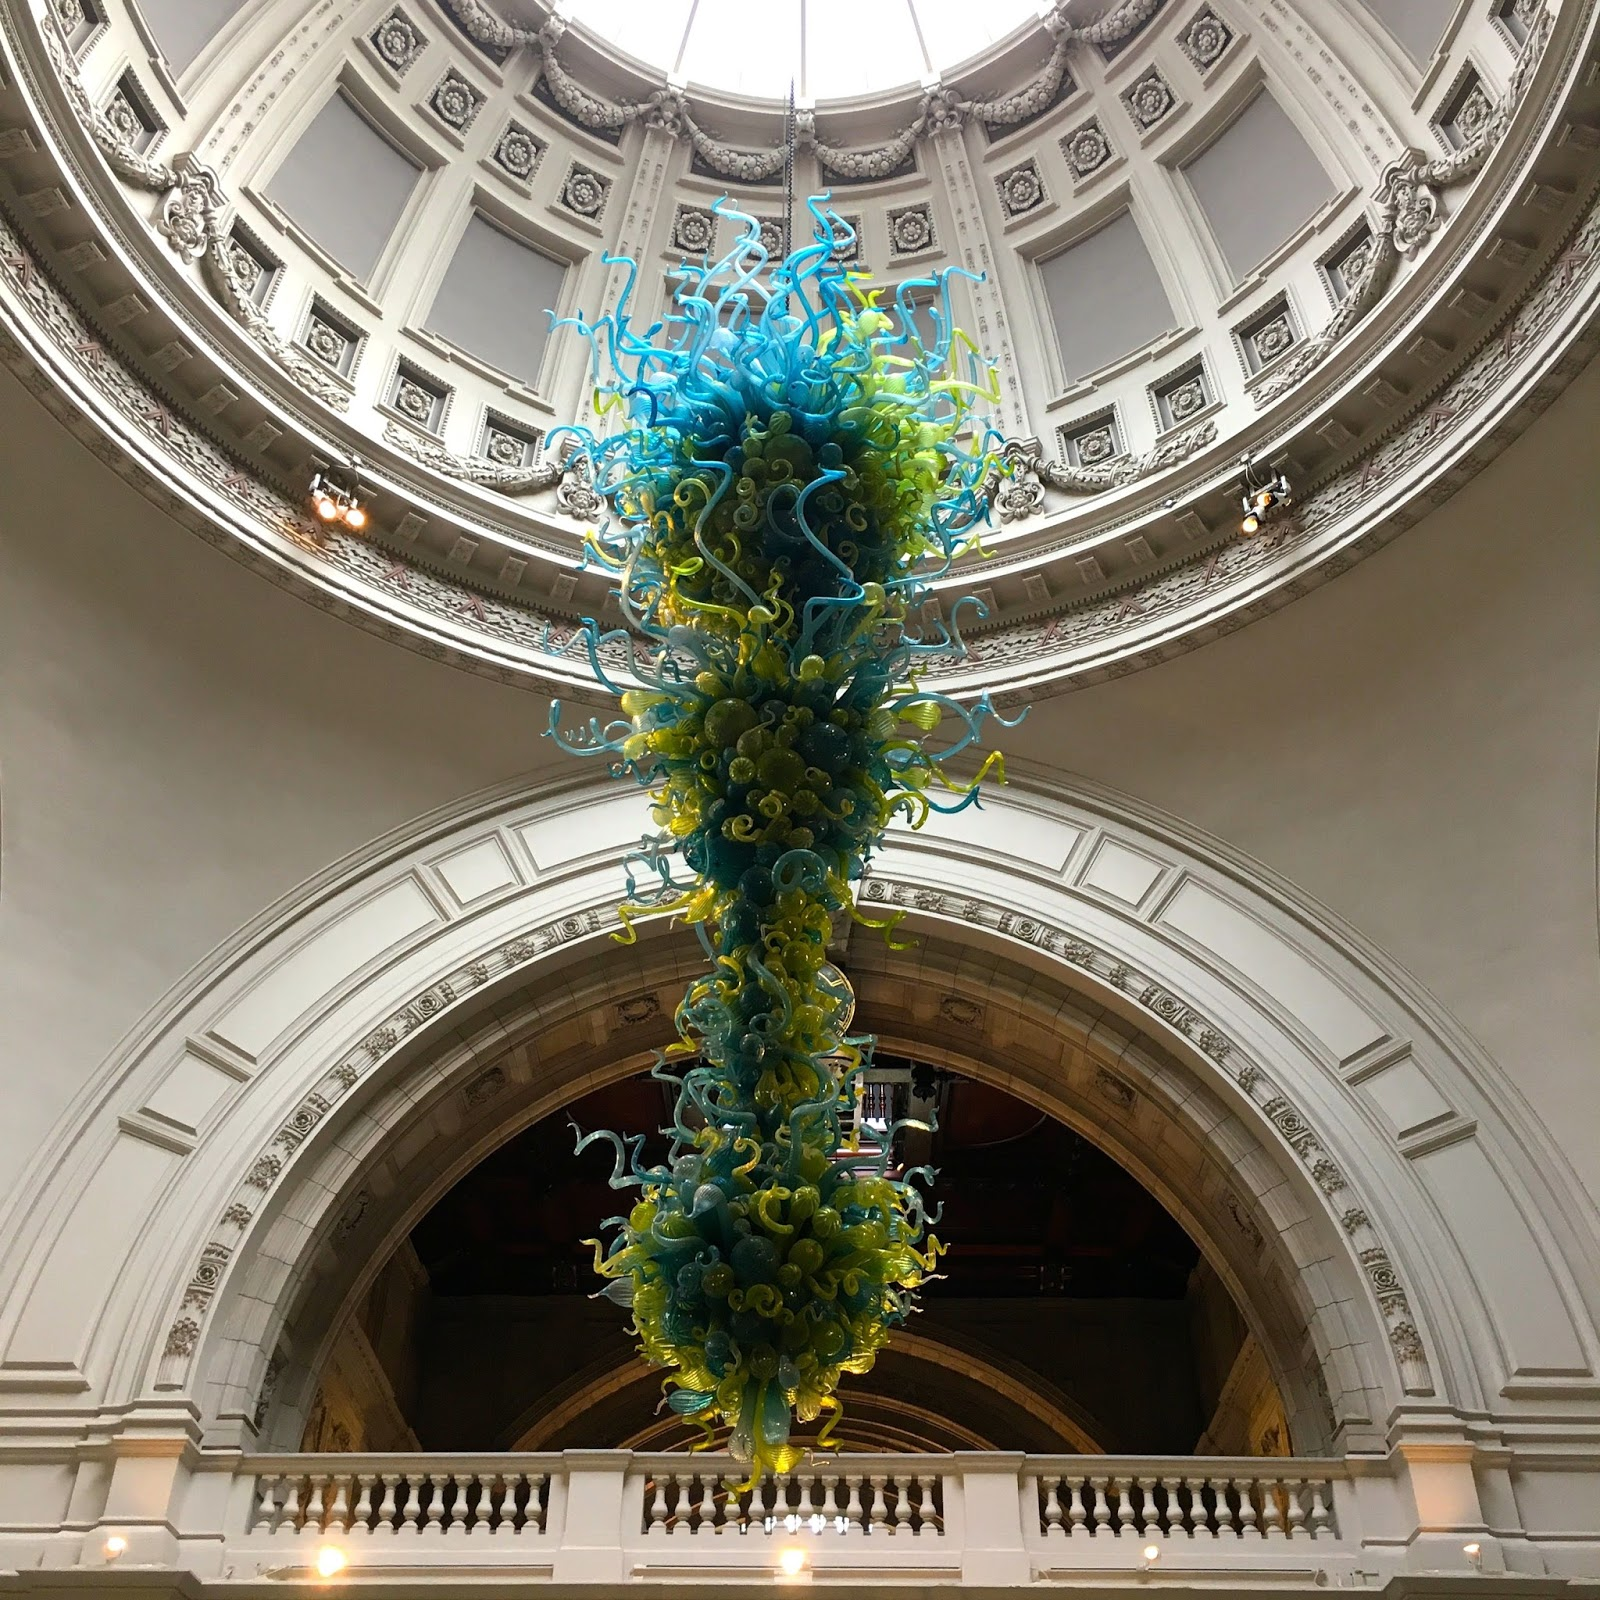 Victoria albert how does it all end the va chandelier by dale chihuly at the victoria albert museum arubaitofo Choice Image